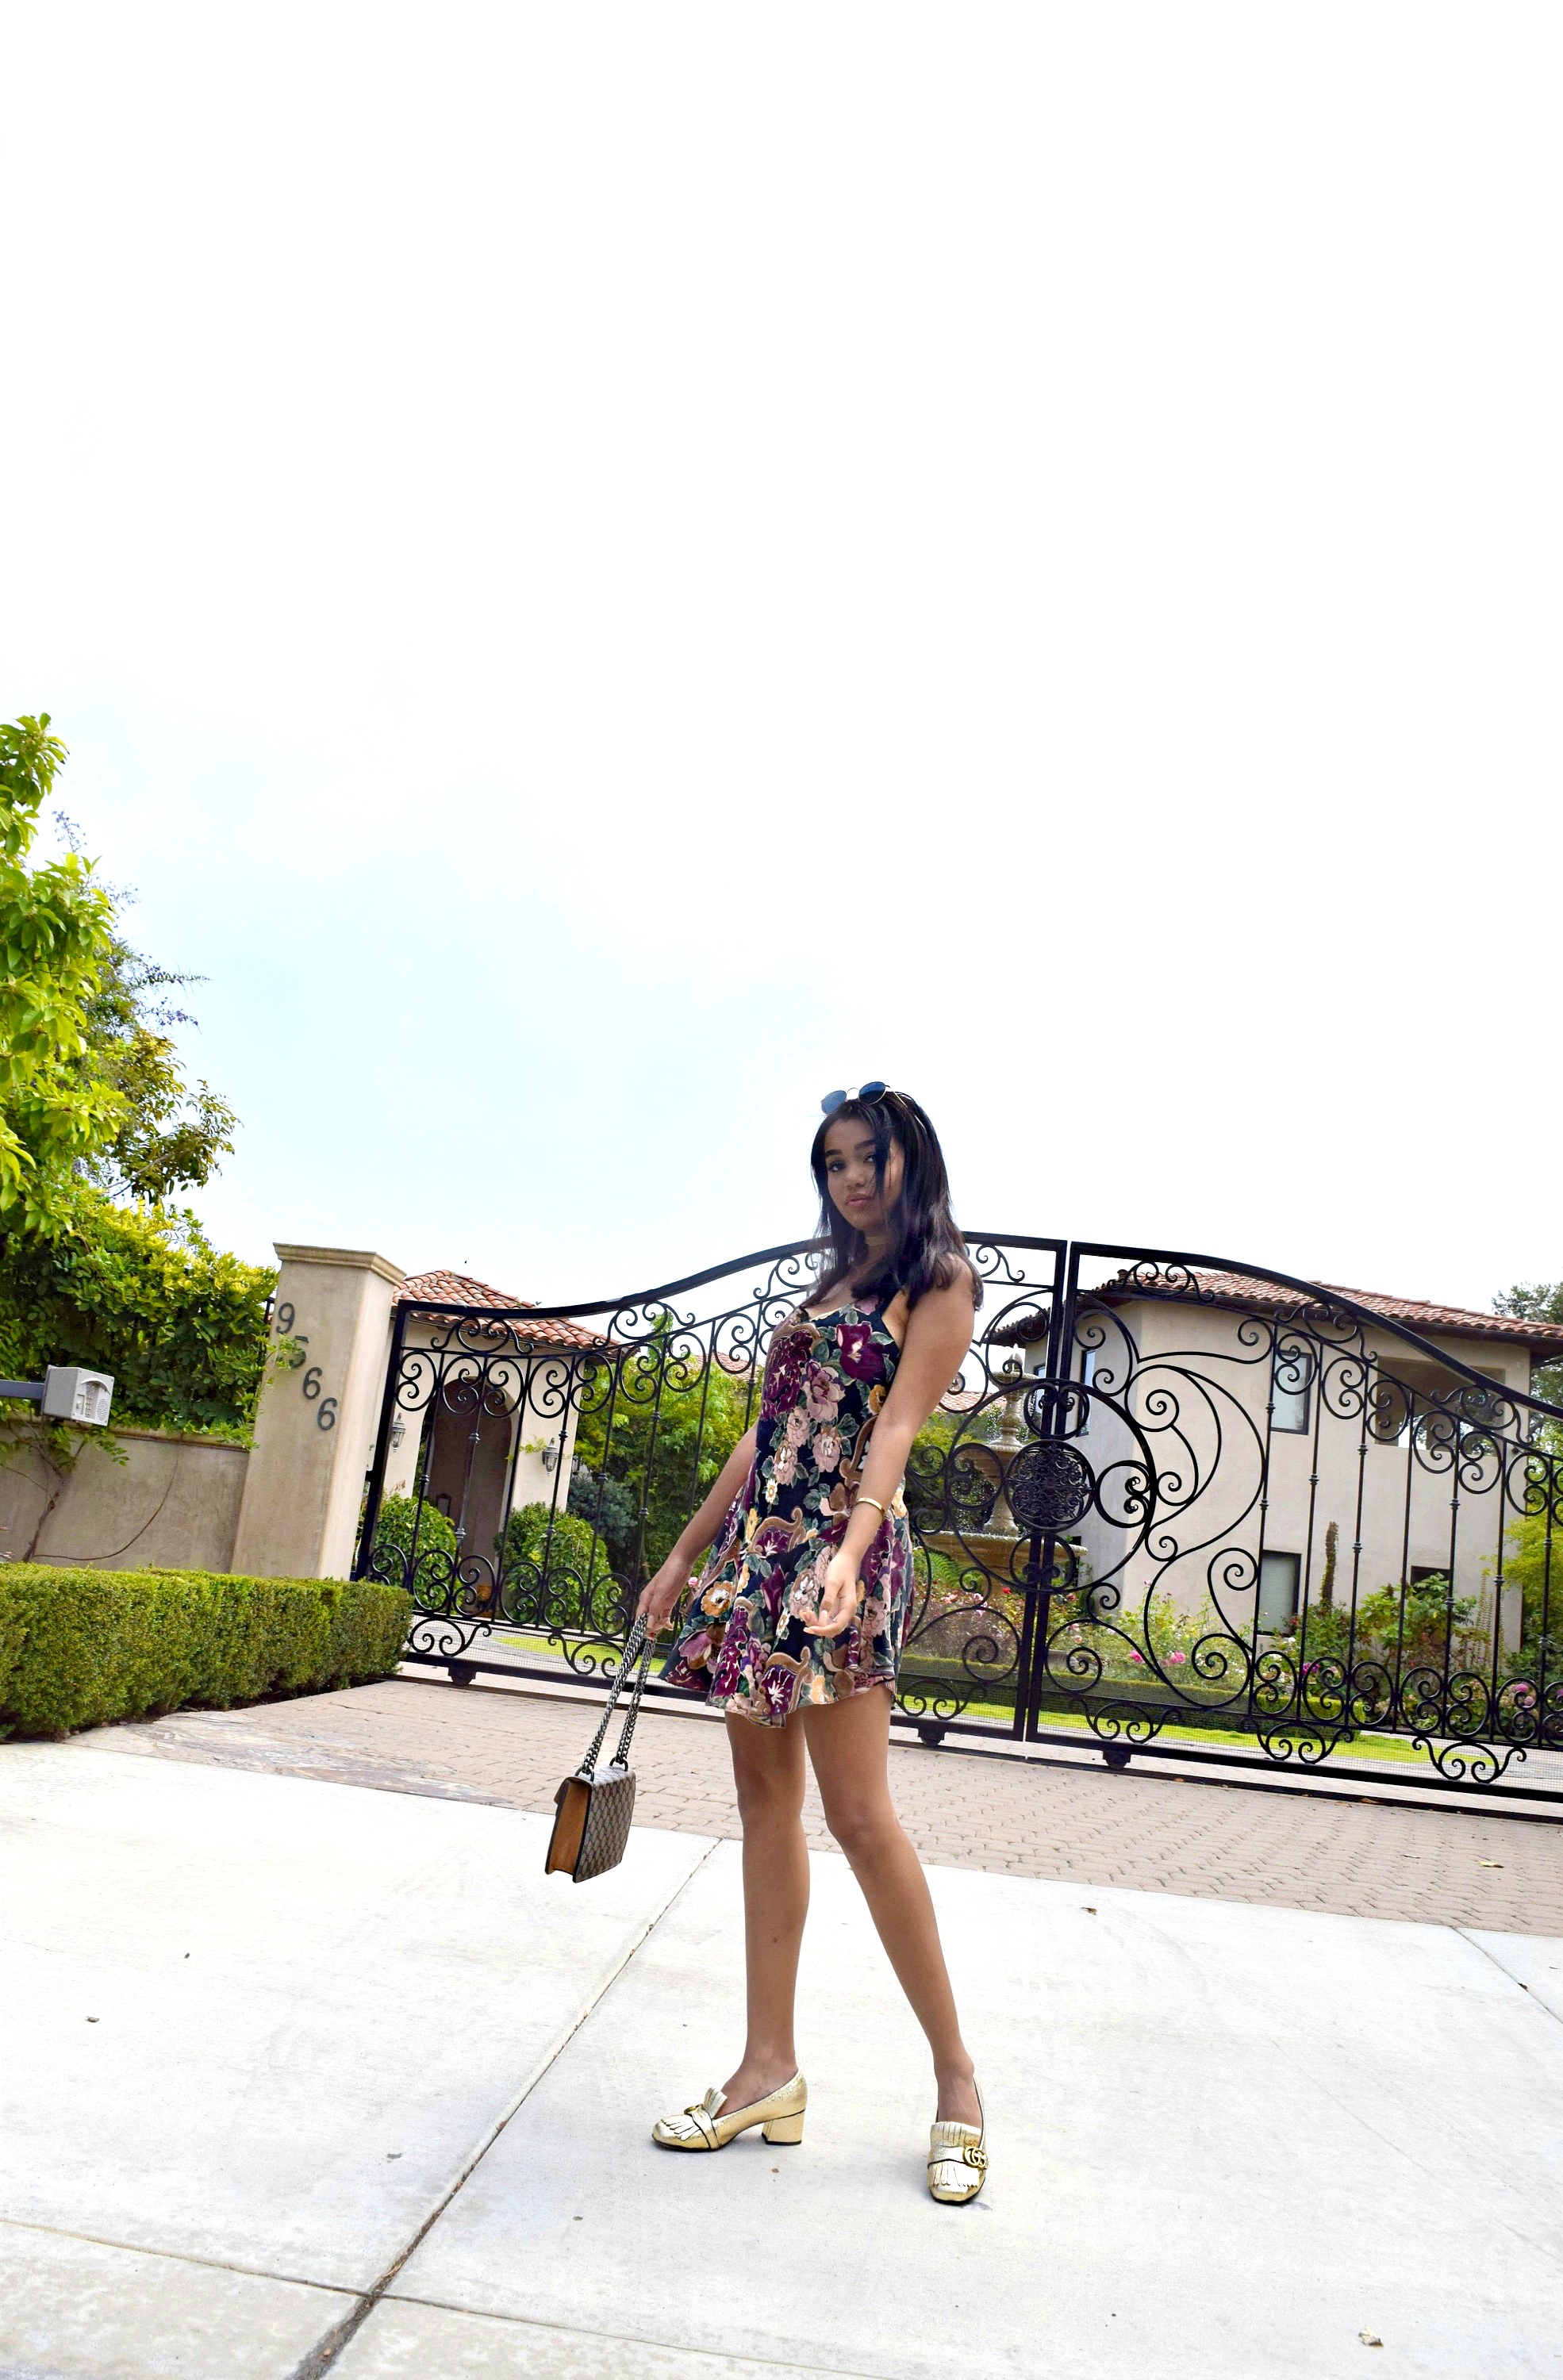 Stay Classy San Diego // San Diego Summer Vacation Street Style //Gucci Loafers & Bag // Vintage Reformation Dress // Los Angeles Fashion Blogger Daphne Blunt: To Style, With Love